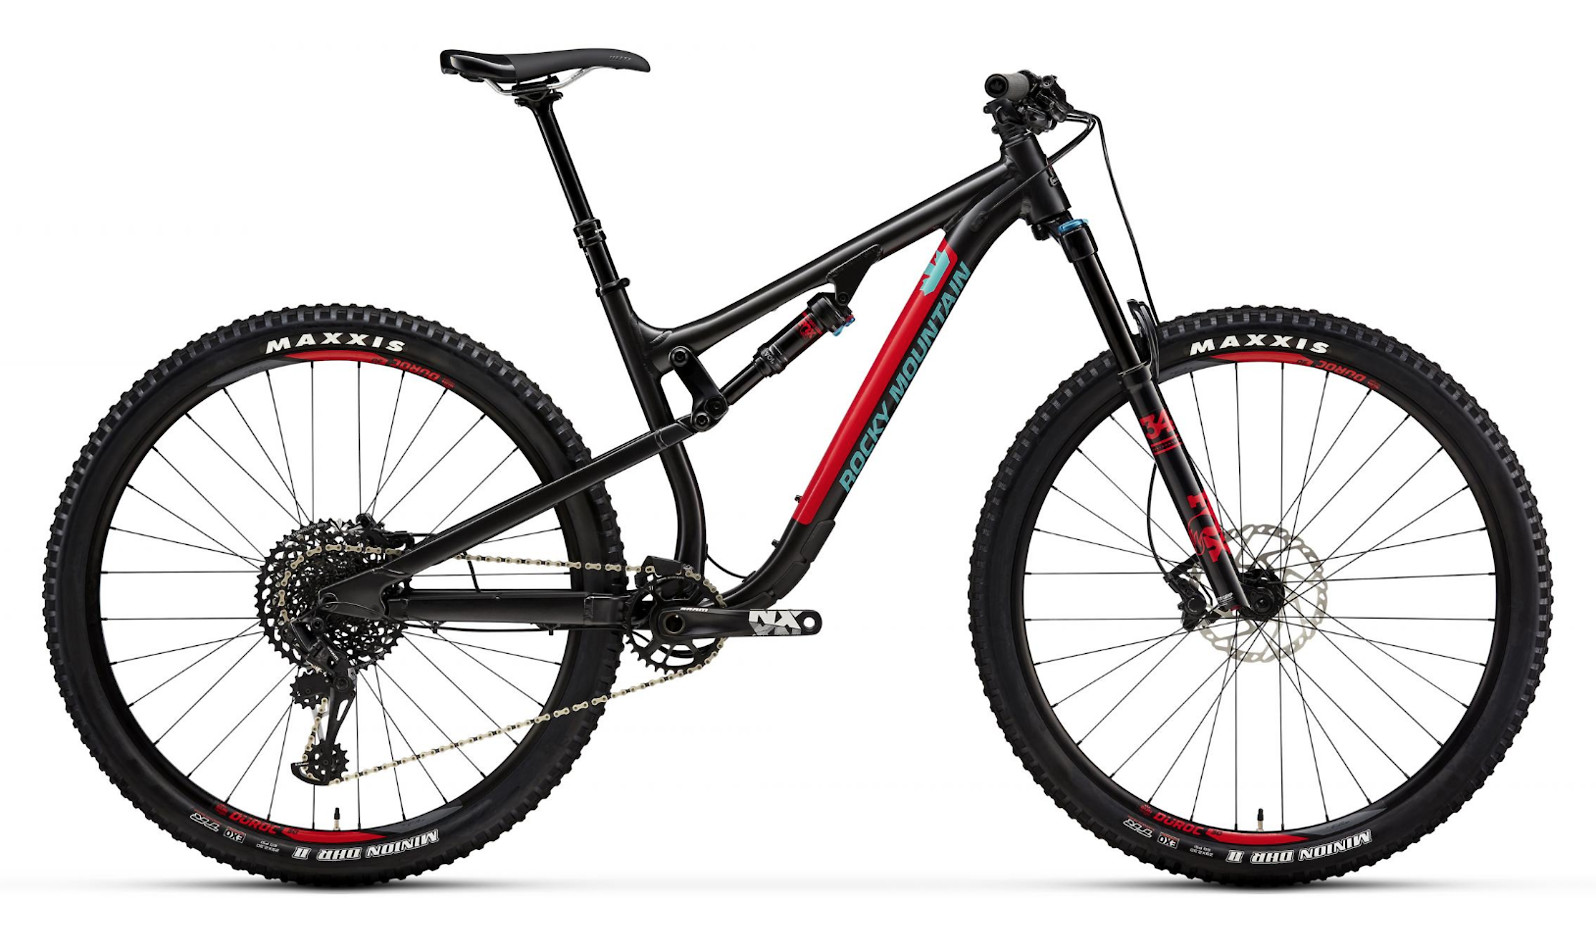 2019 Rocky Mountain Instinct Alloy 50 - Black and red